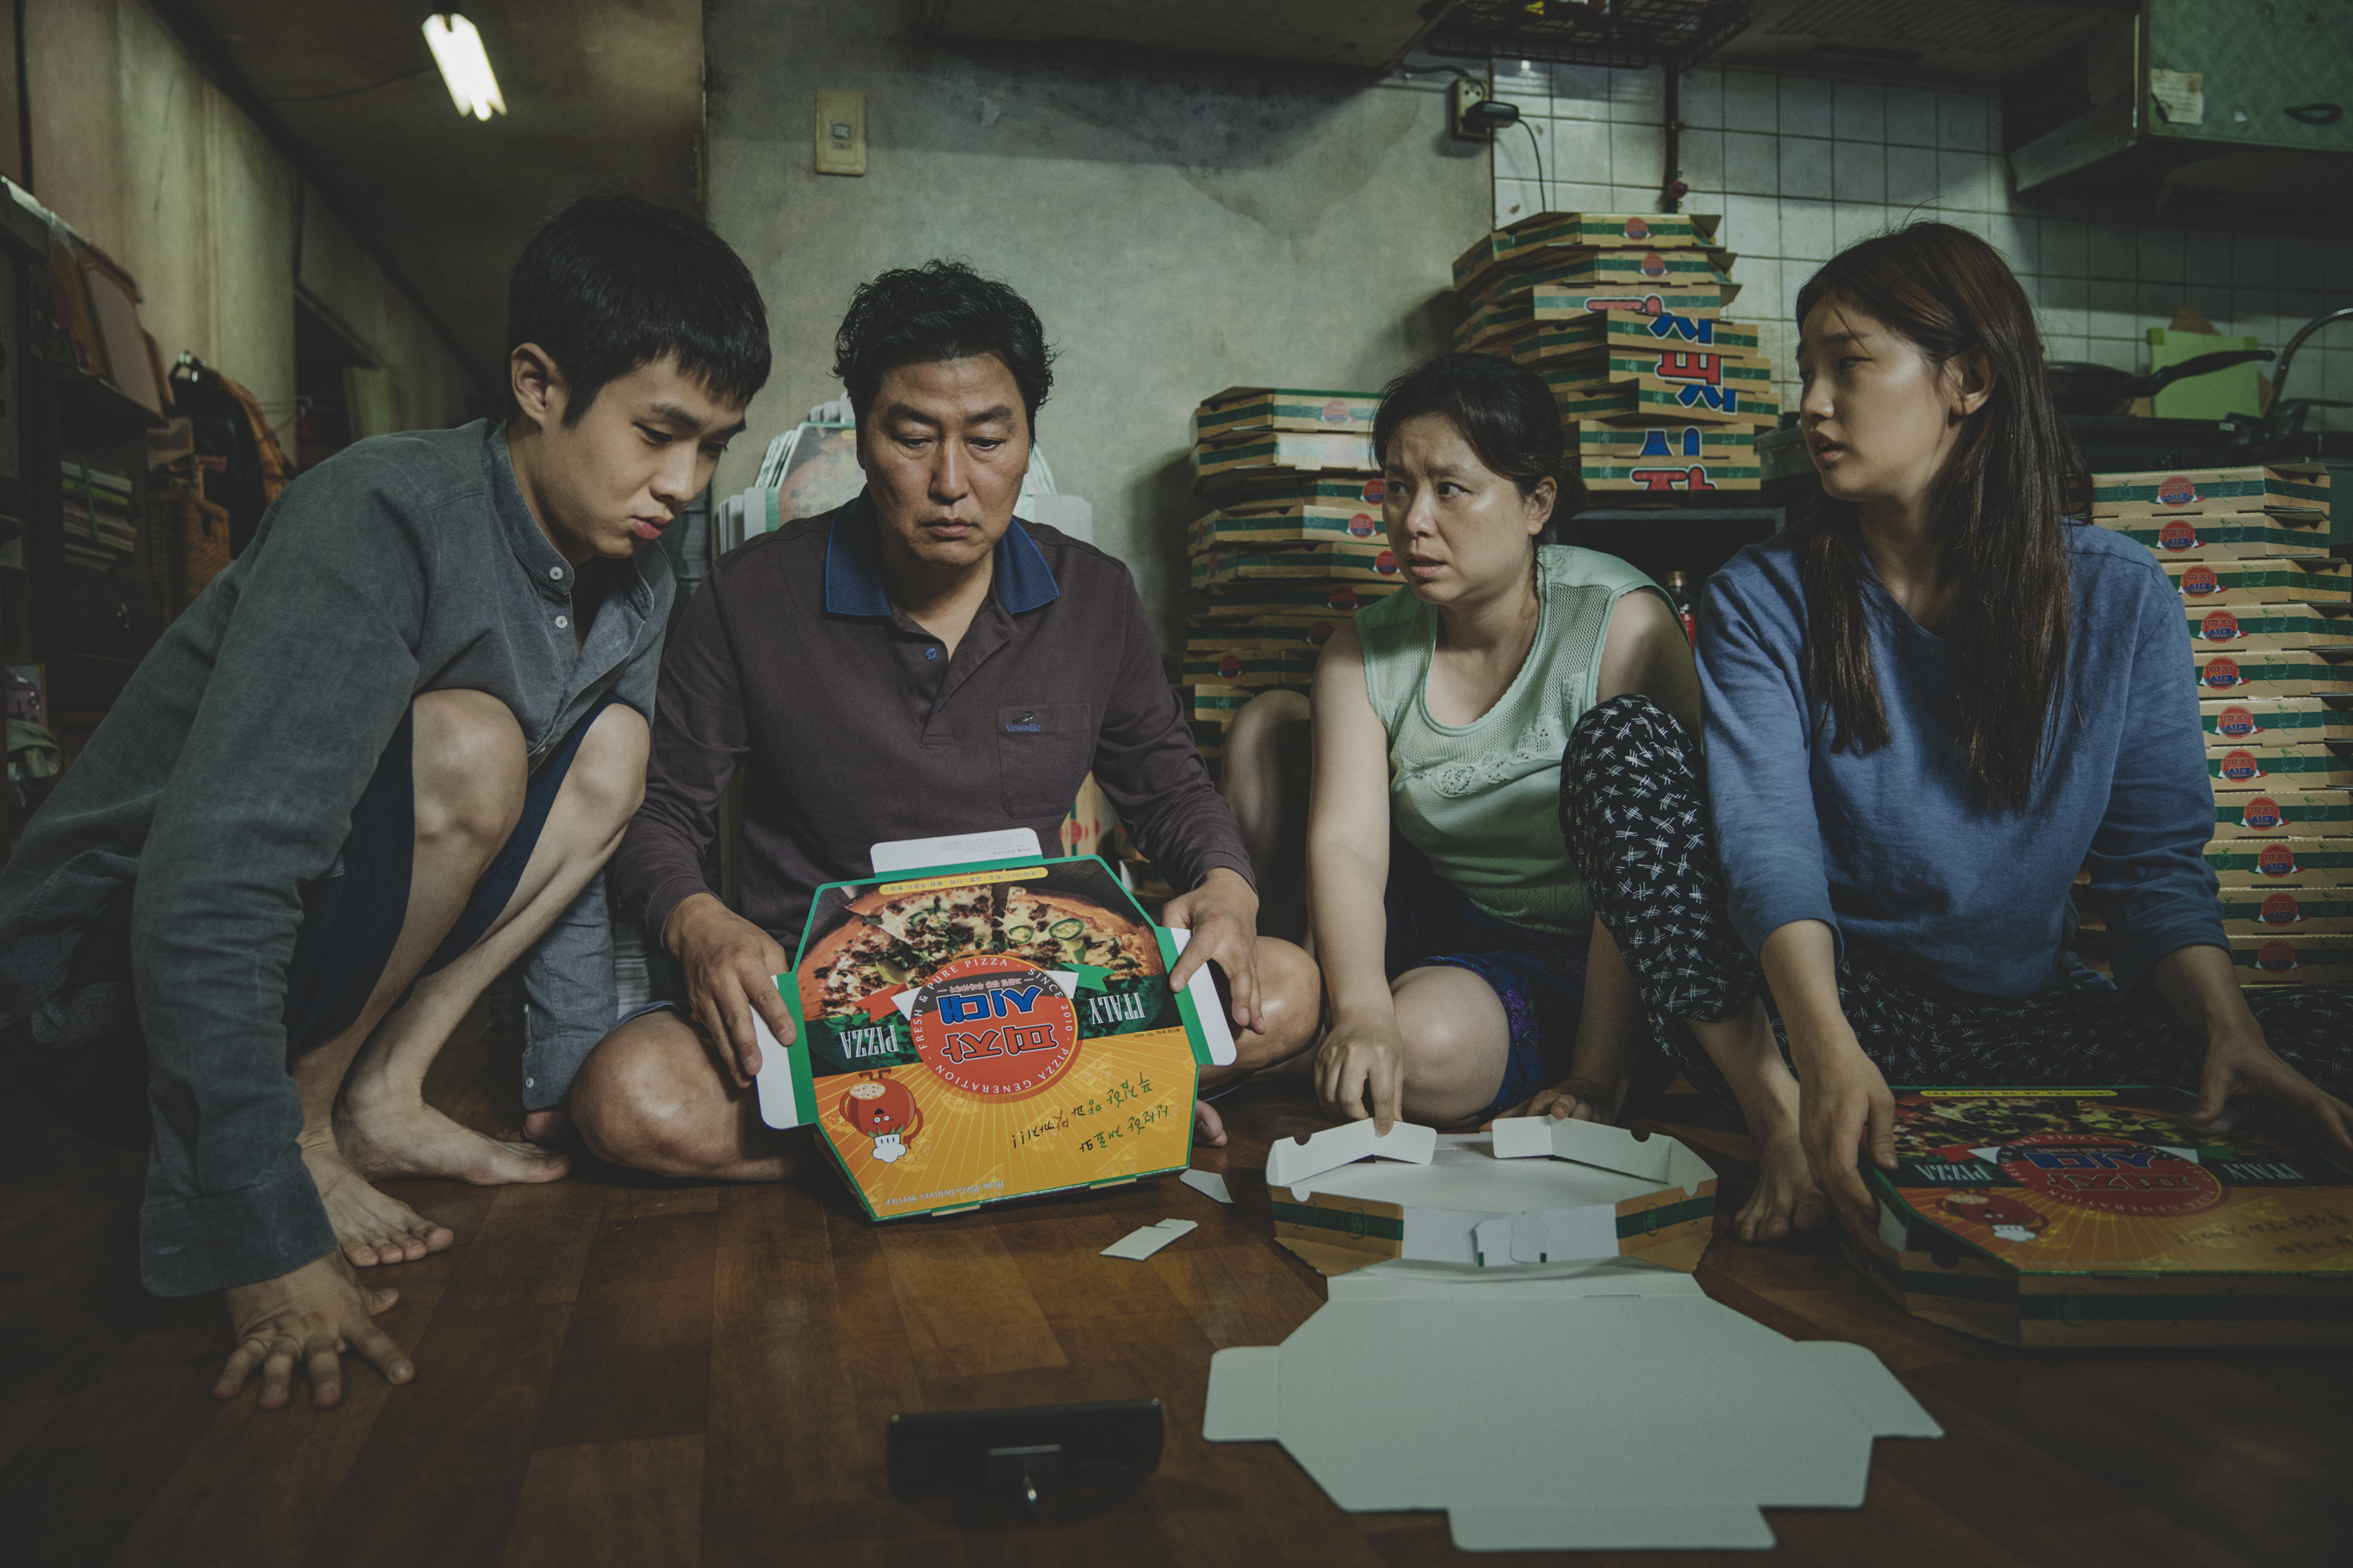 [News] Bong Joon-Ho's PARASITE Coming This October